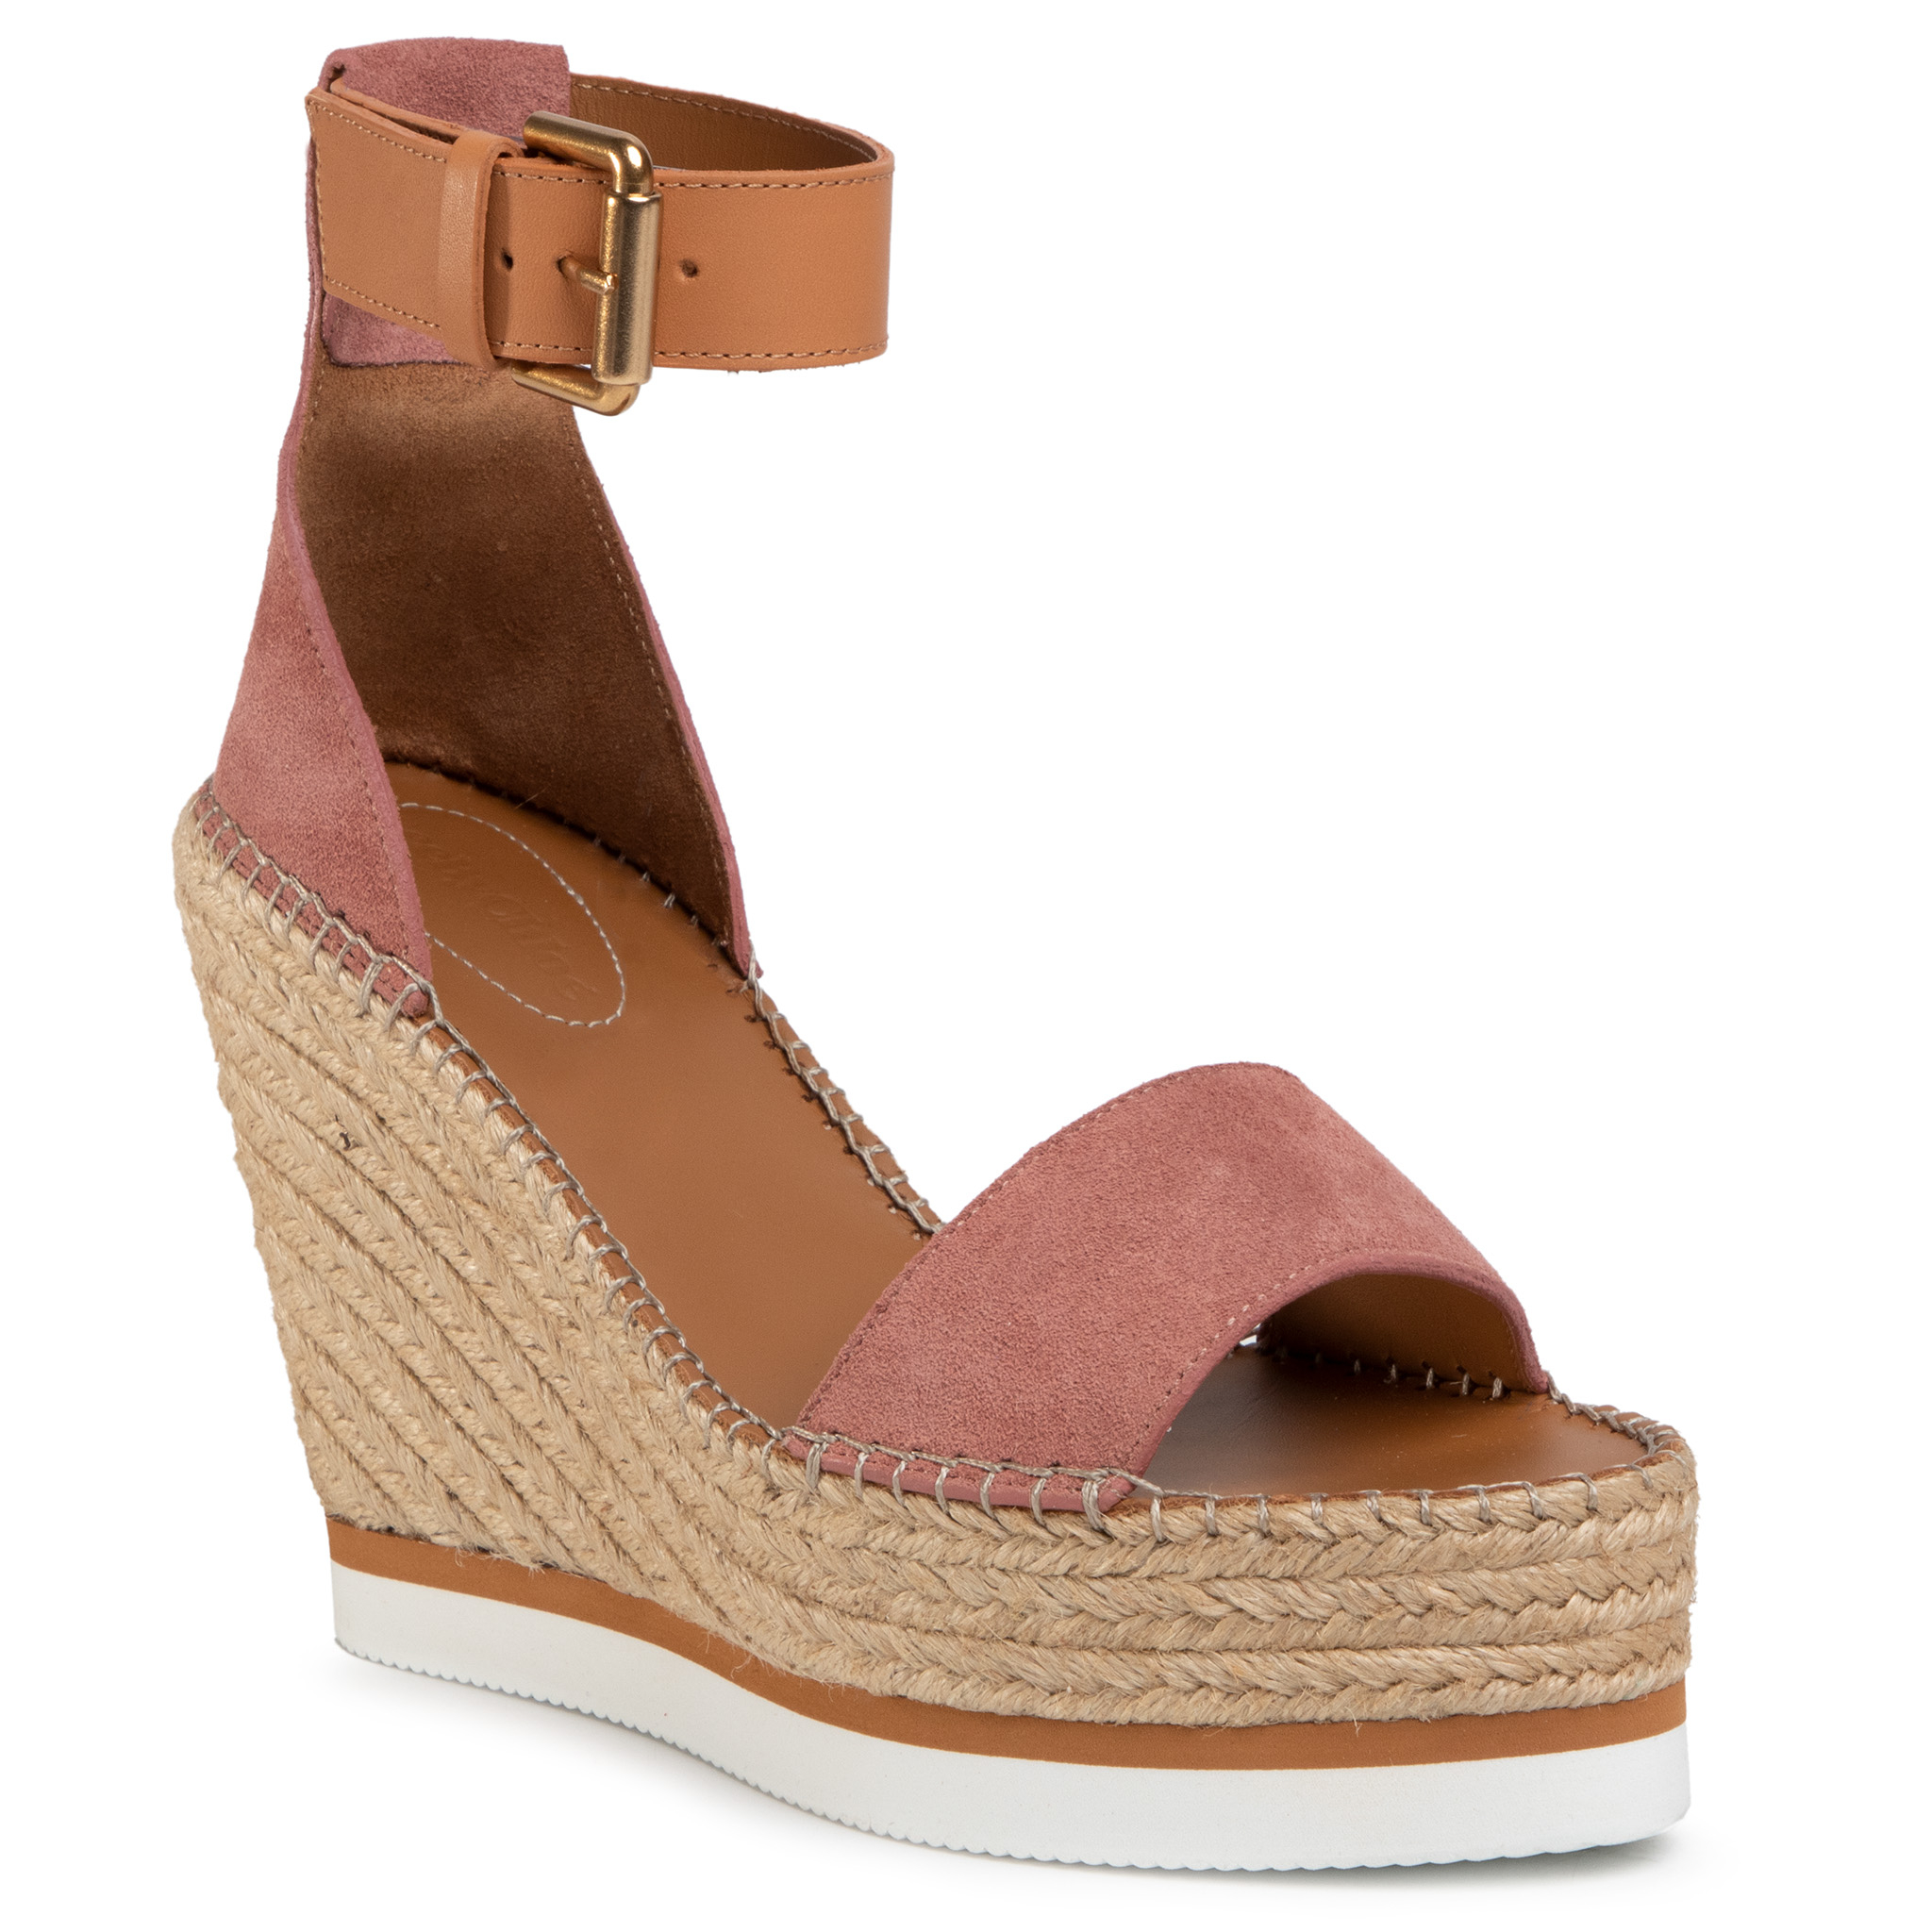 Image of Espadrillas SEE BY CHLOÉ - SB26152 Crosta 323/Dark Pink/Nat. Calf Light 533